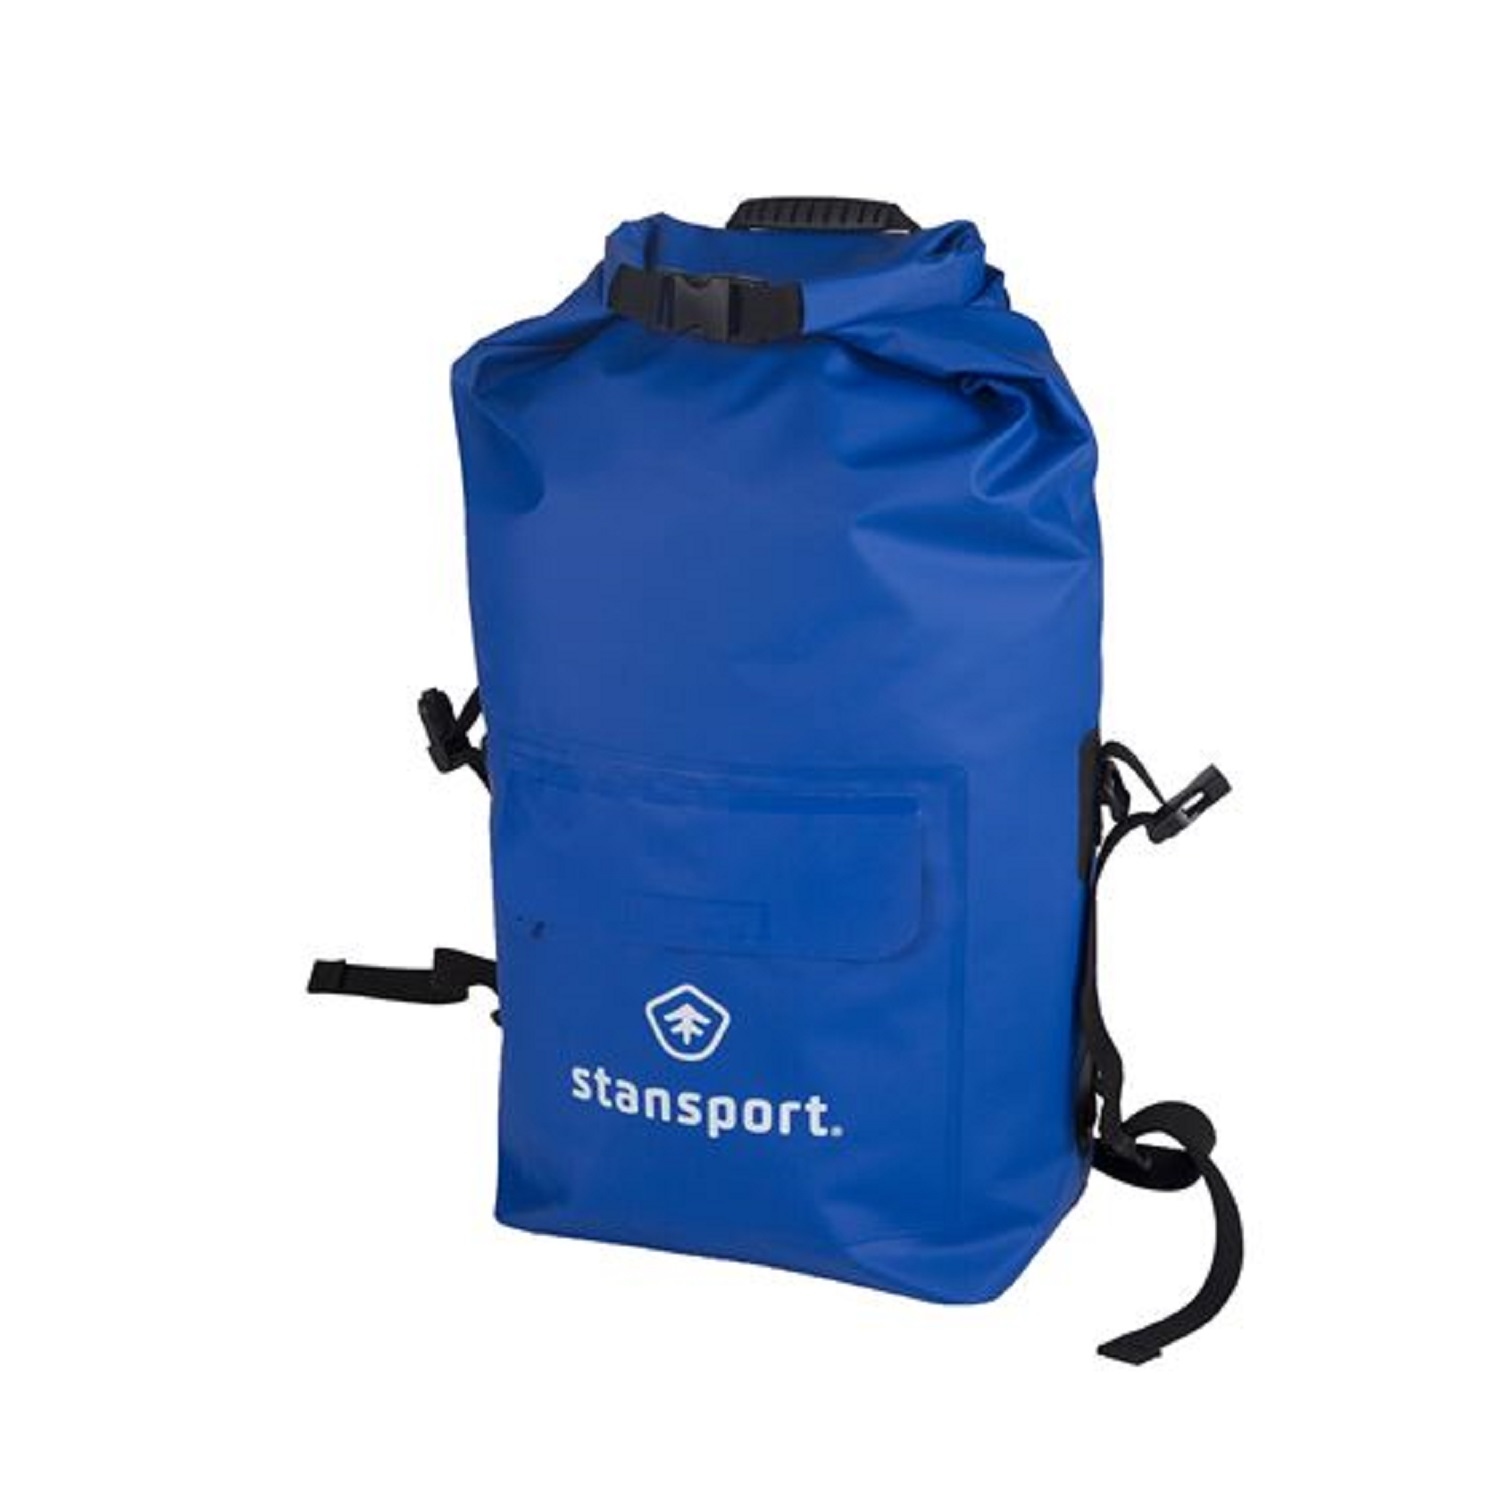 Stansport Waterproof Backpack Dry Bag 30L by Stansport